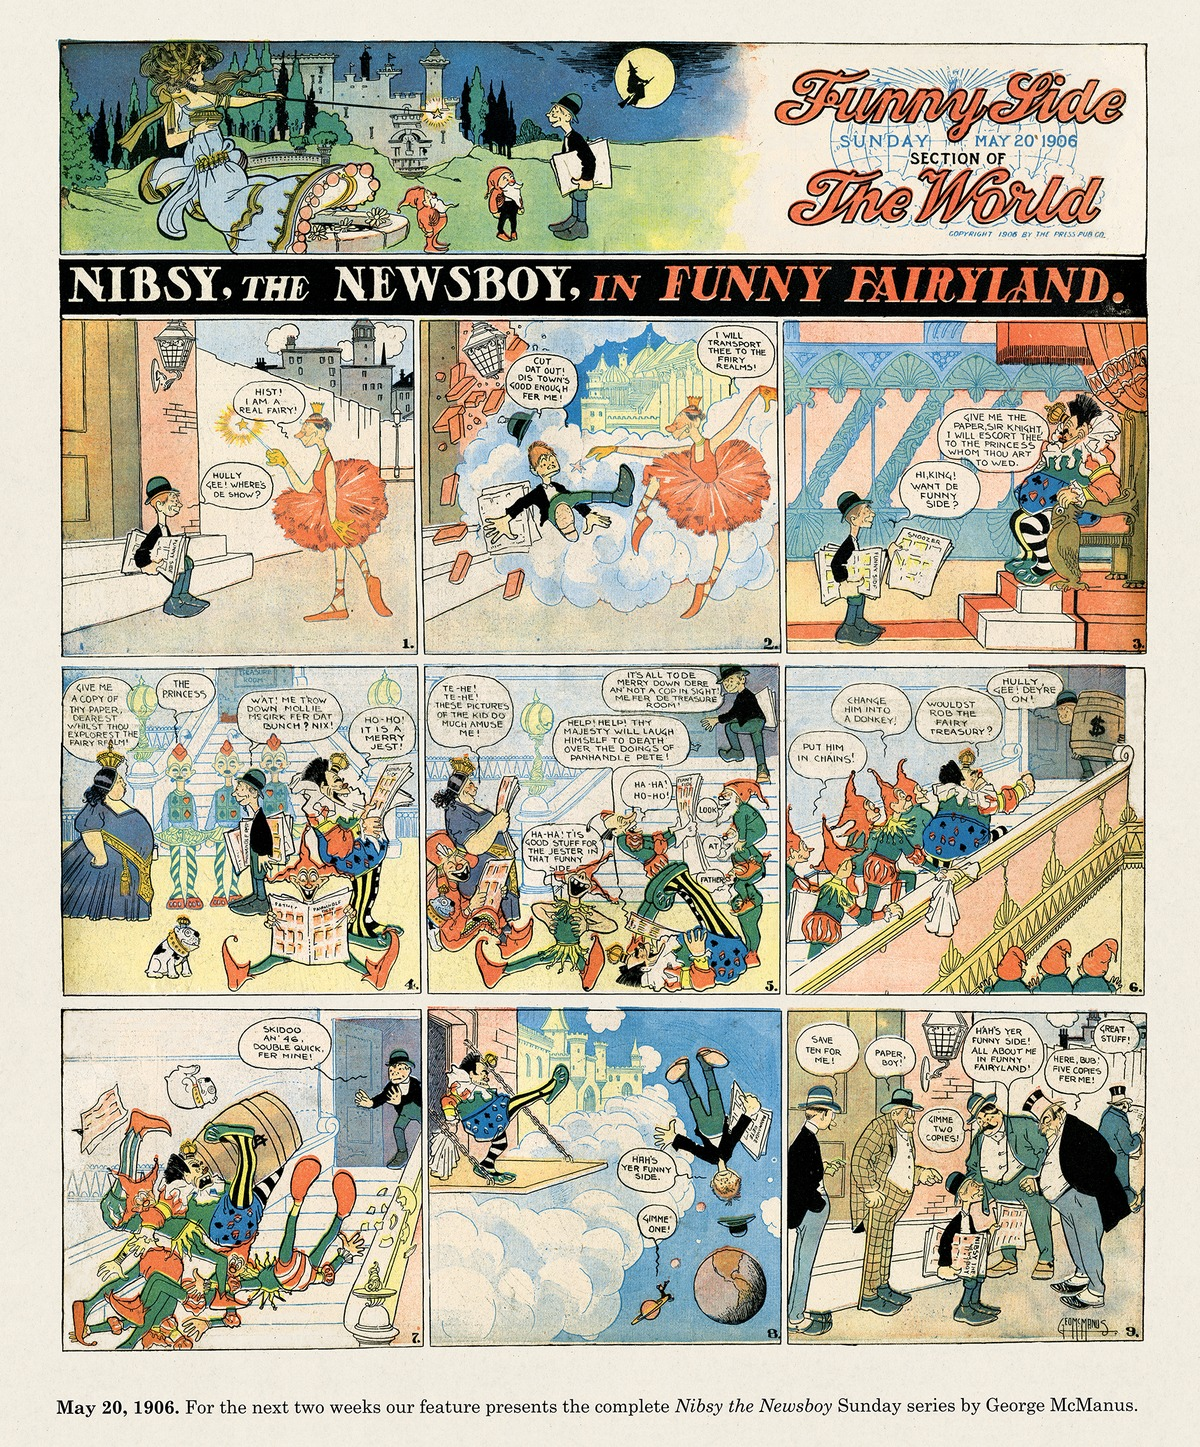 Origins of the Sunday Comics by Peter Maresca on Wed, 24 Feb 2021